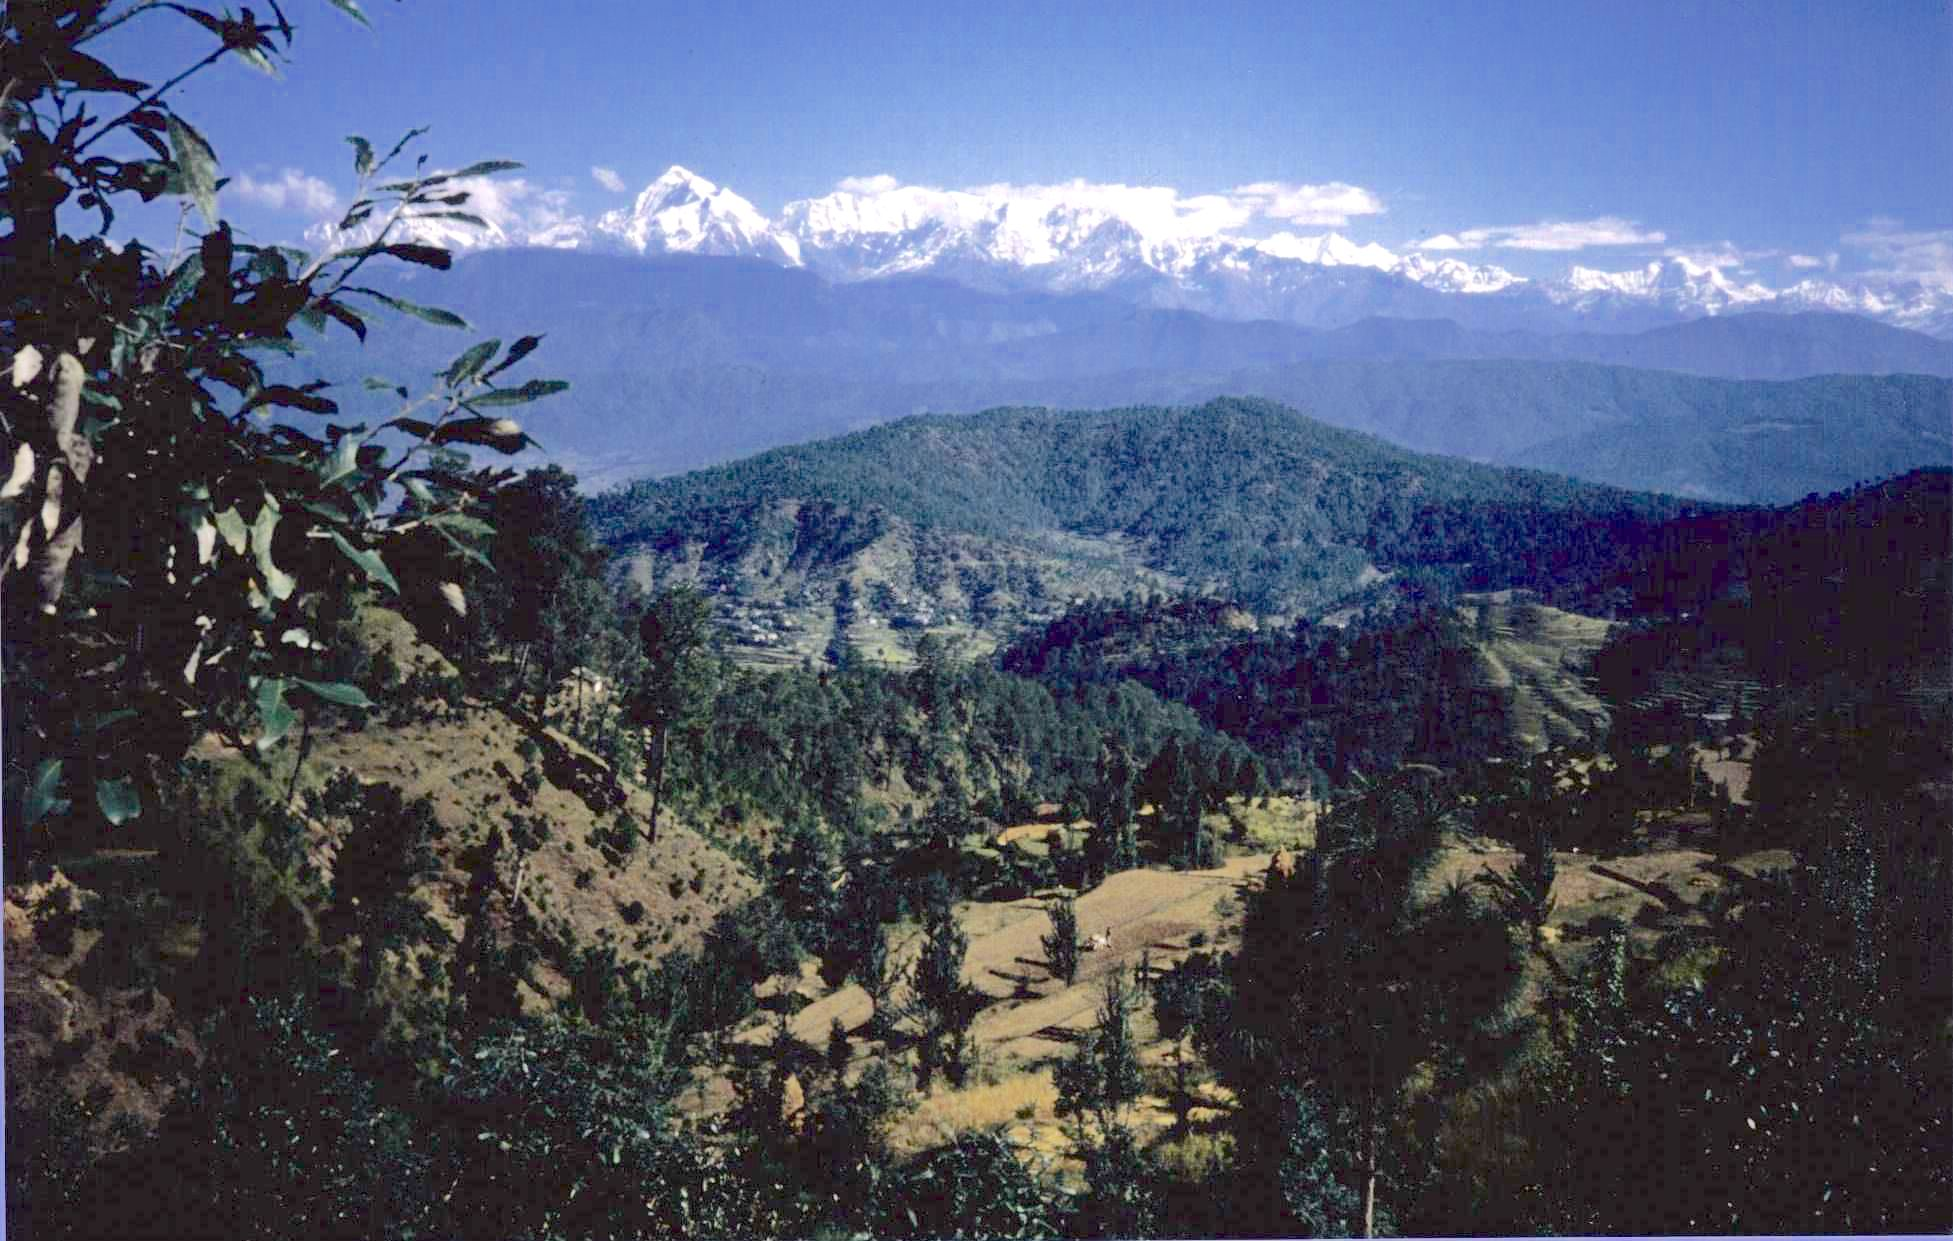 The Himalayas seen from the valley